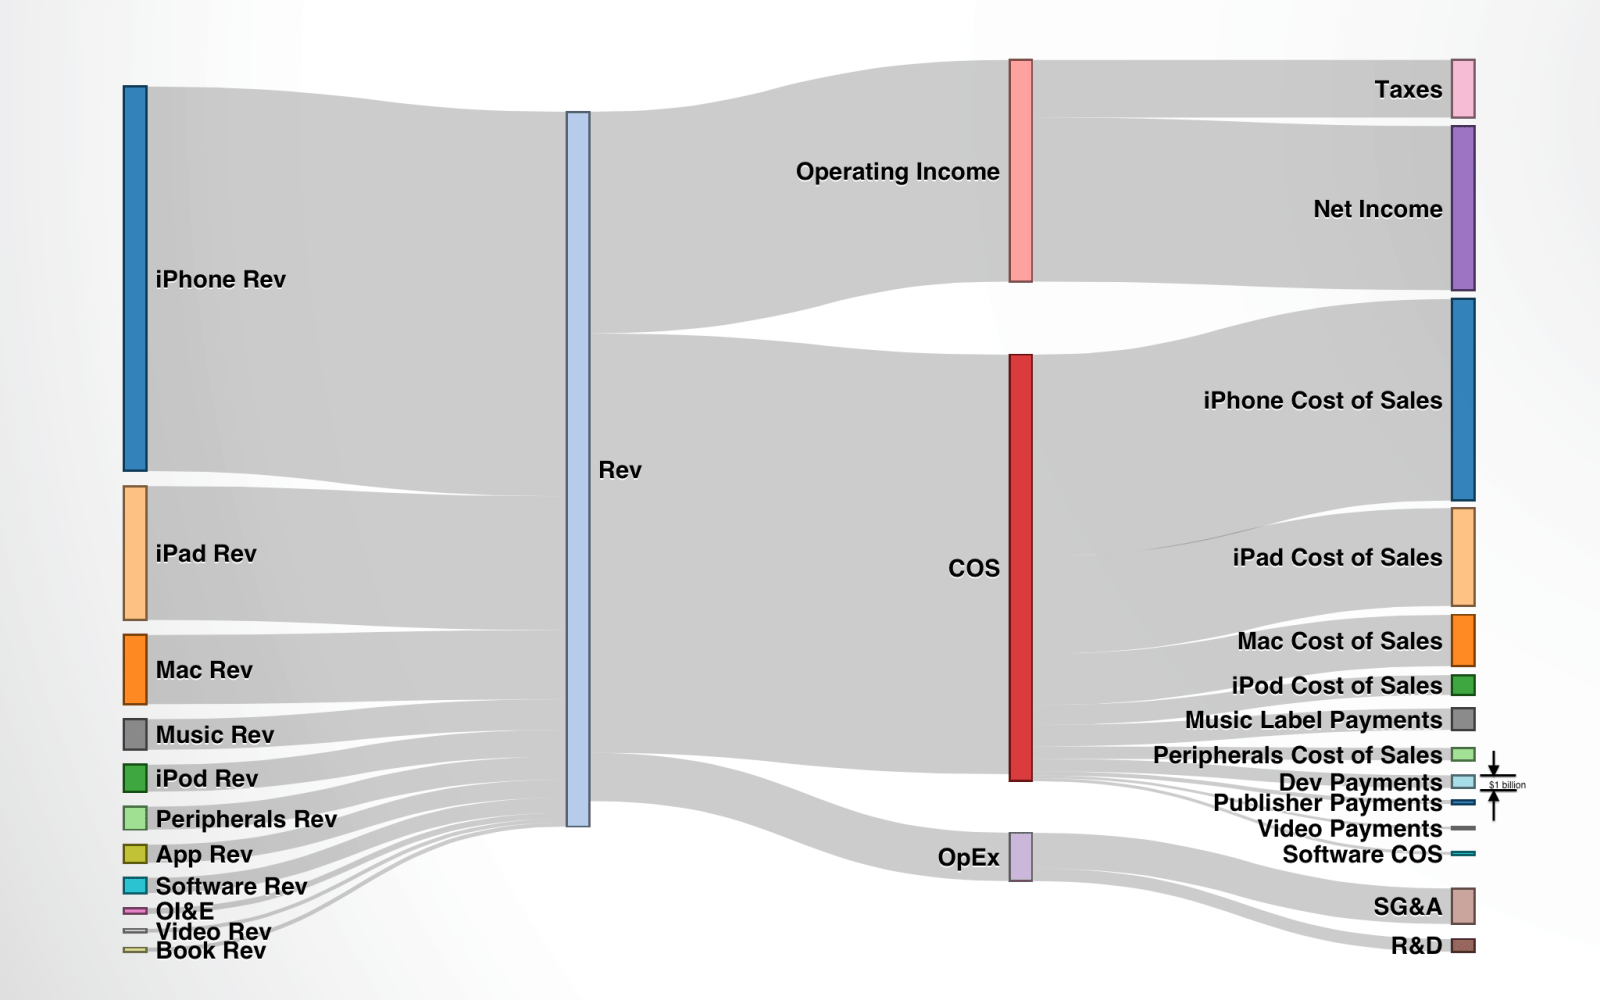 Apple's revenue in and outs